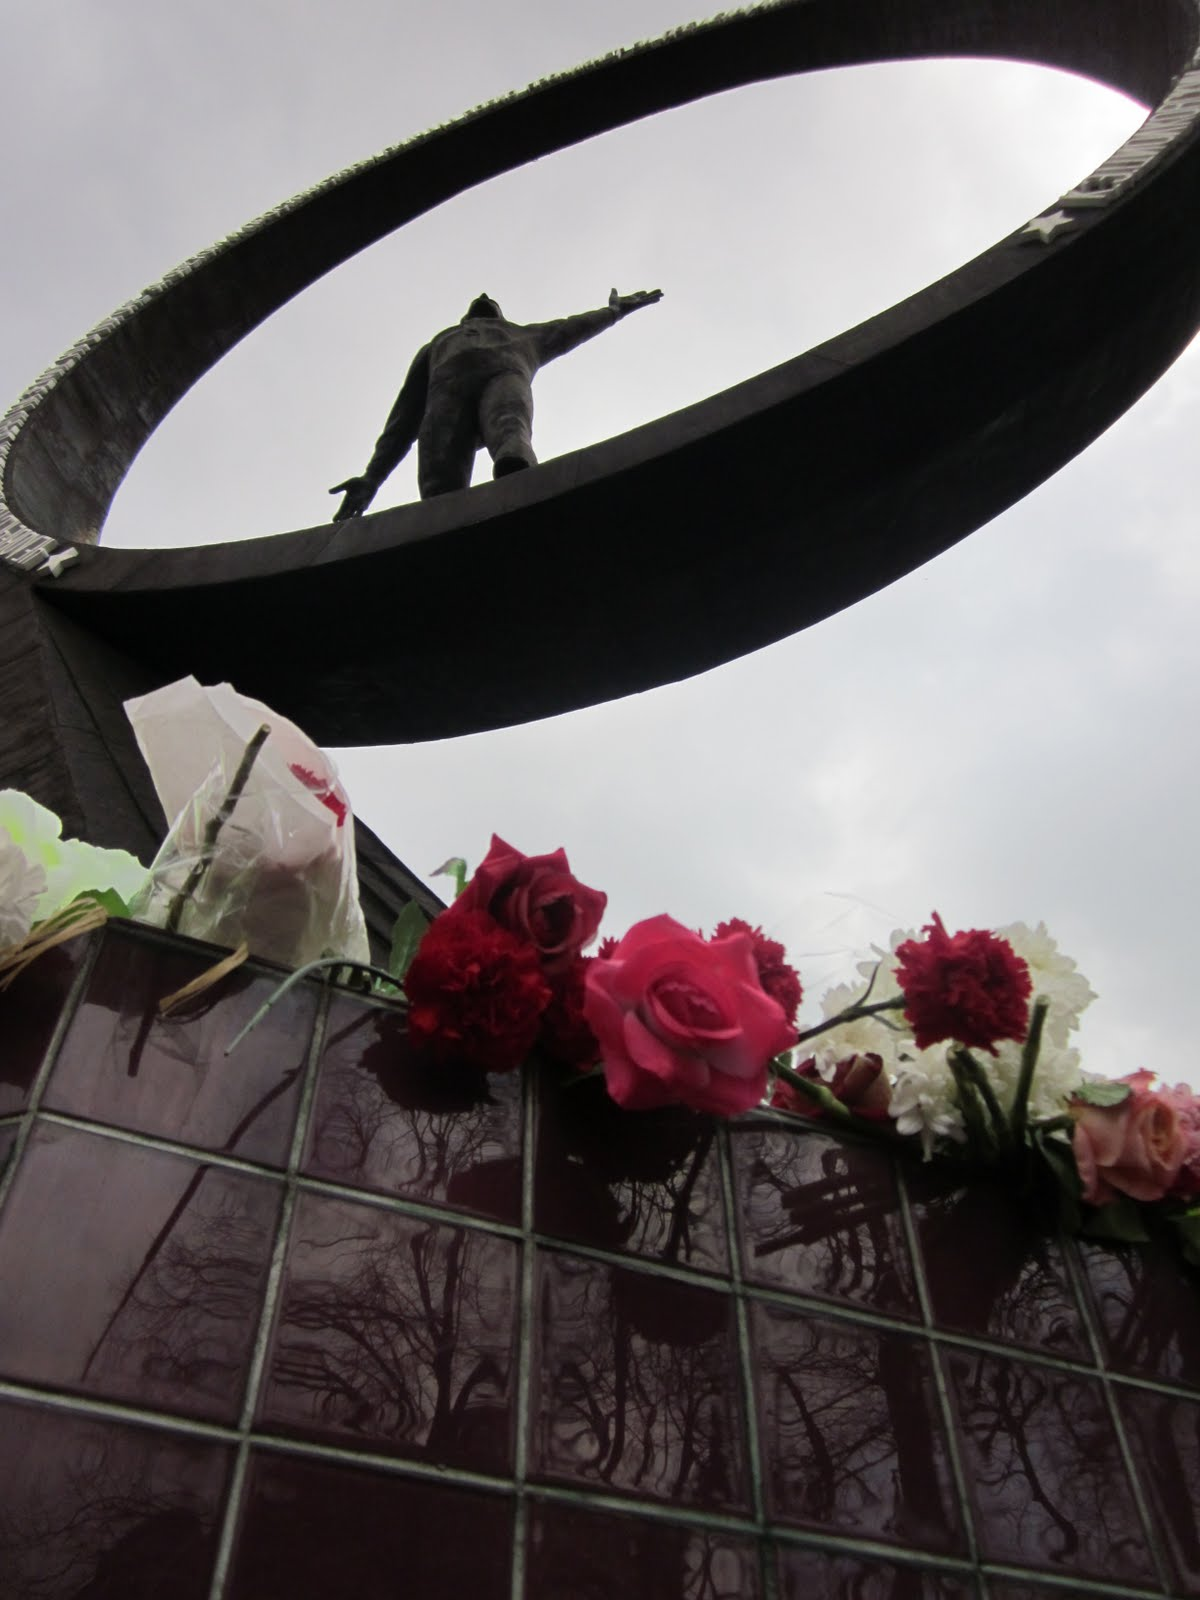 Soviet memorial dedicated to cosmonauts from kaliningrad - One Of The Three Cosmonauts Who Used To Live In Kaliningrad